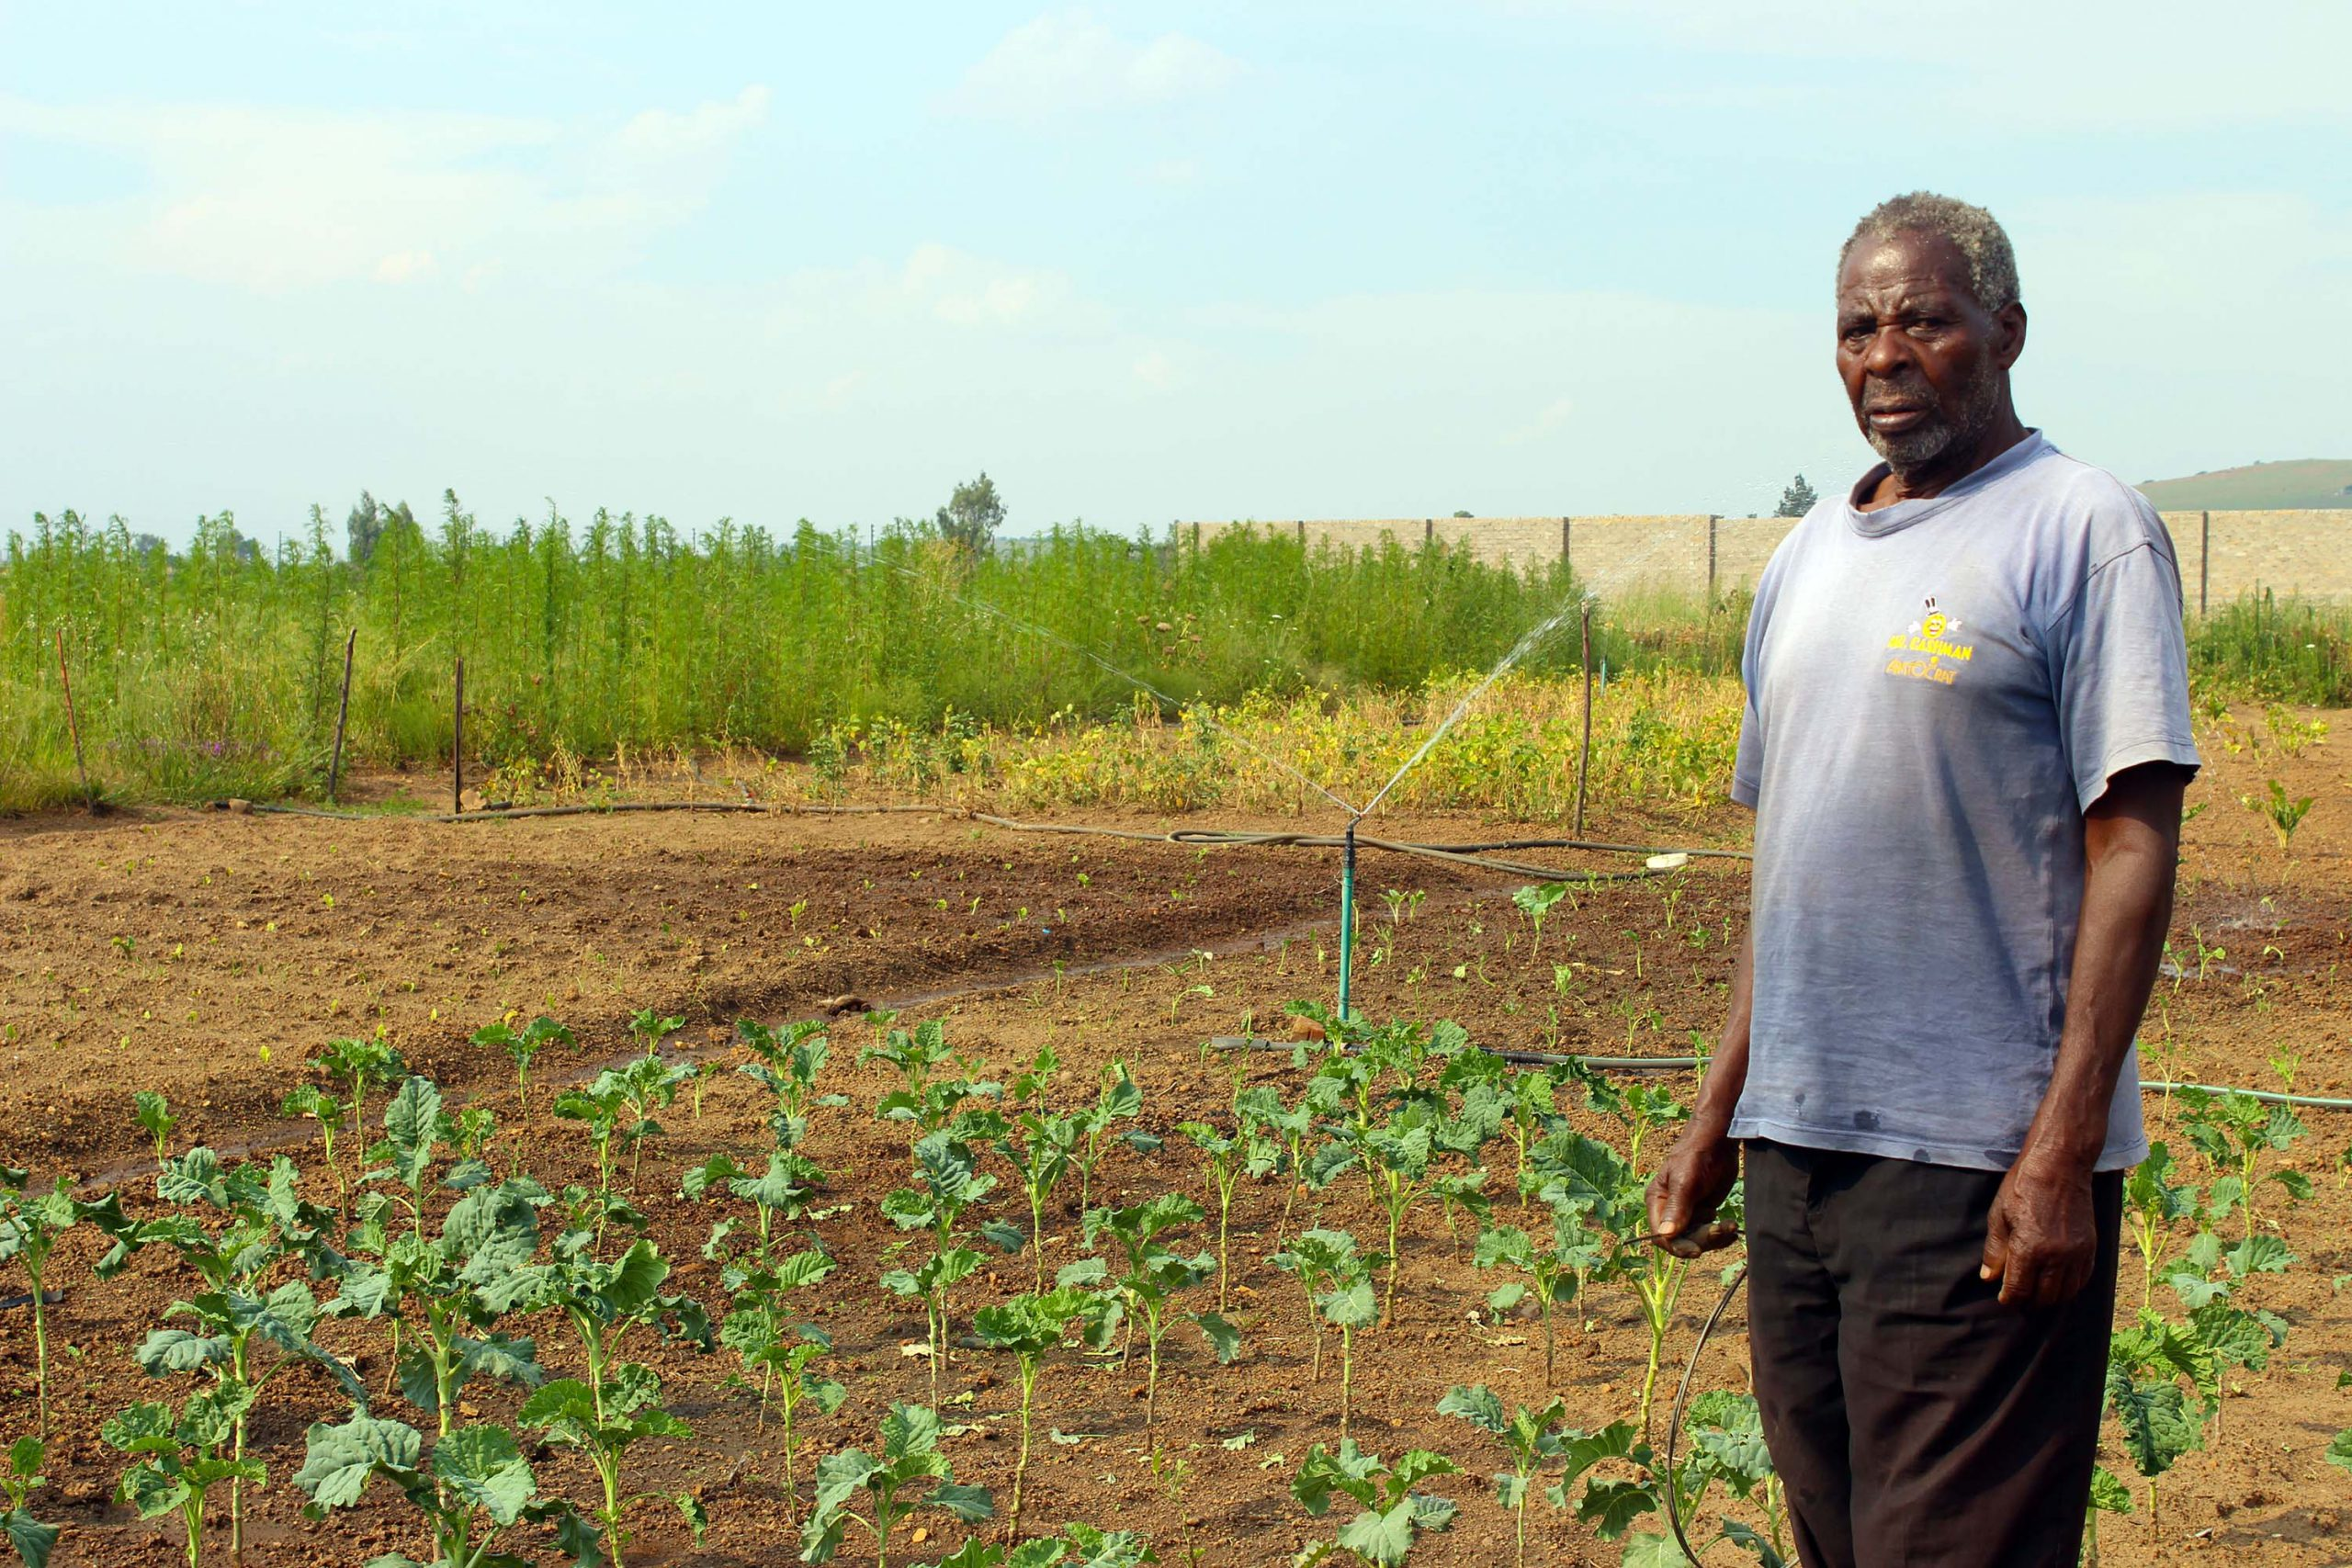 18 March 2019: Mahlomelane Johannes Mthembu on his farm about 11km from De Deur in Gauteng.  (Photograph by Funiwe Ngwenya)